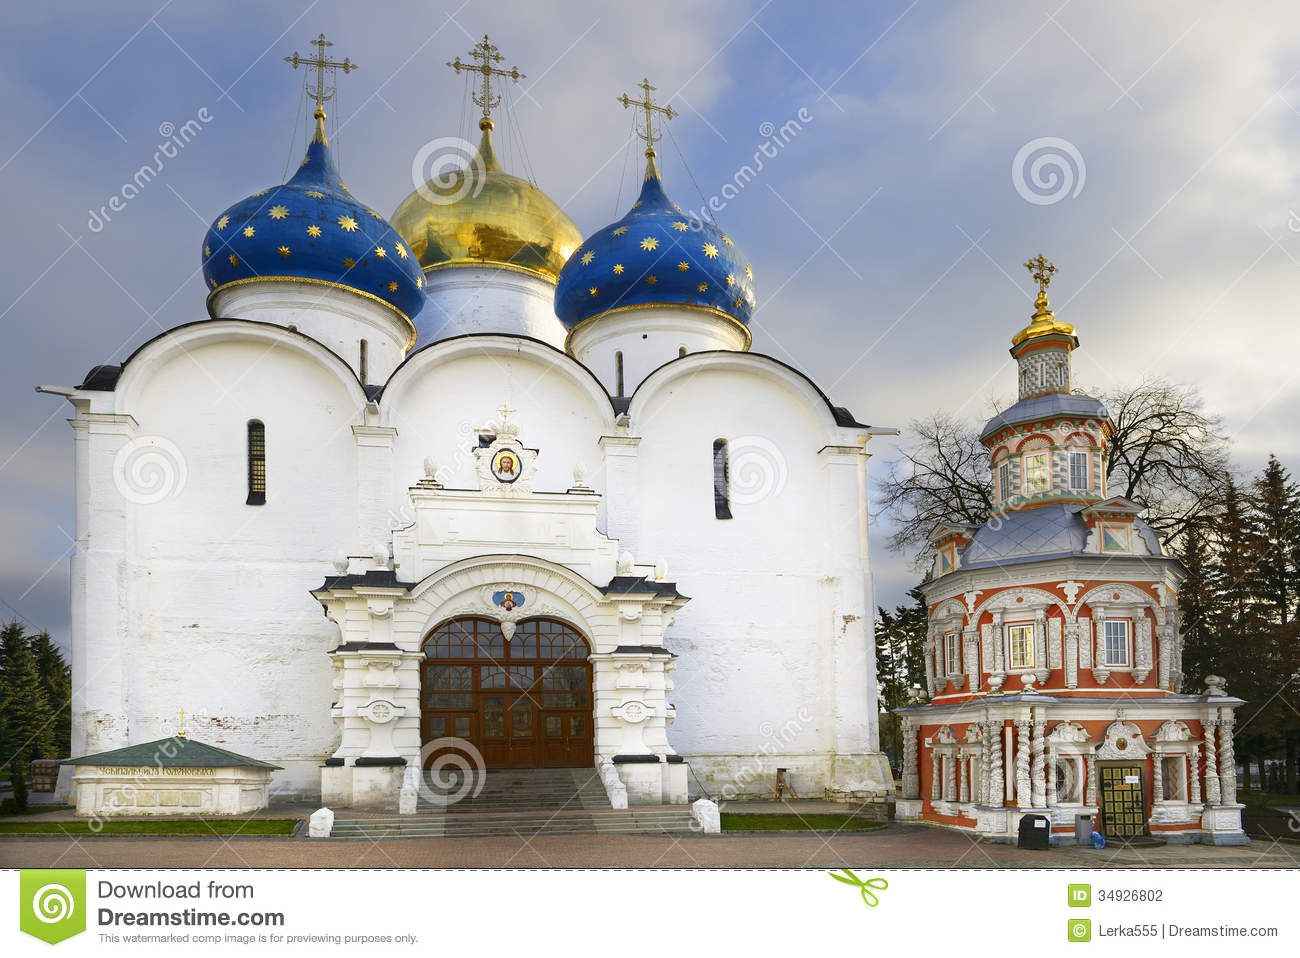 Assumption Cathedral (1559.